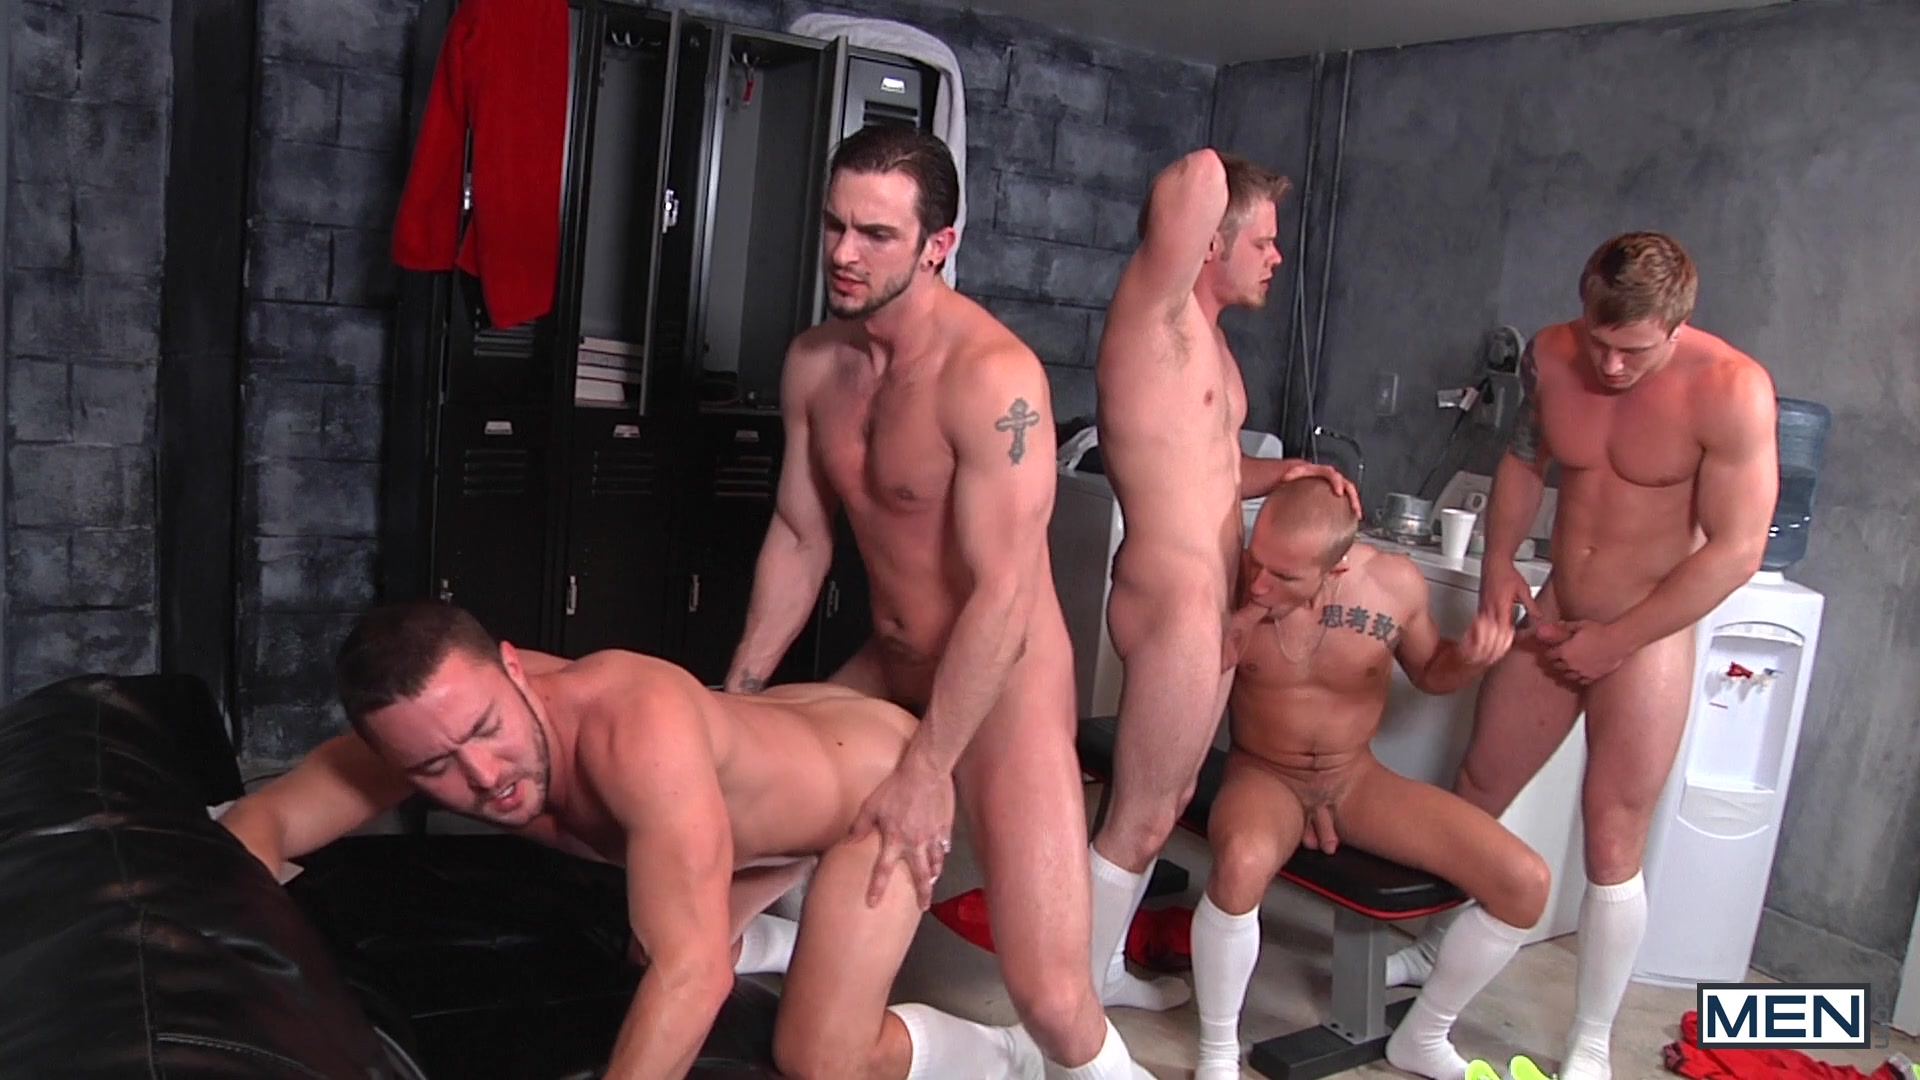 Watch Score Part 3 – Jo – Jizz Orgycolt Rivers – Phenix Saint – Rob Ryder – Steve Stiffer – Tom Faulk (MEN.COM) Gay Porn Tube Videos Gifs And Free XXX HD Sex Movies Photos Online